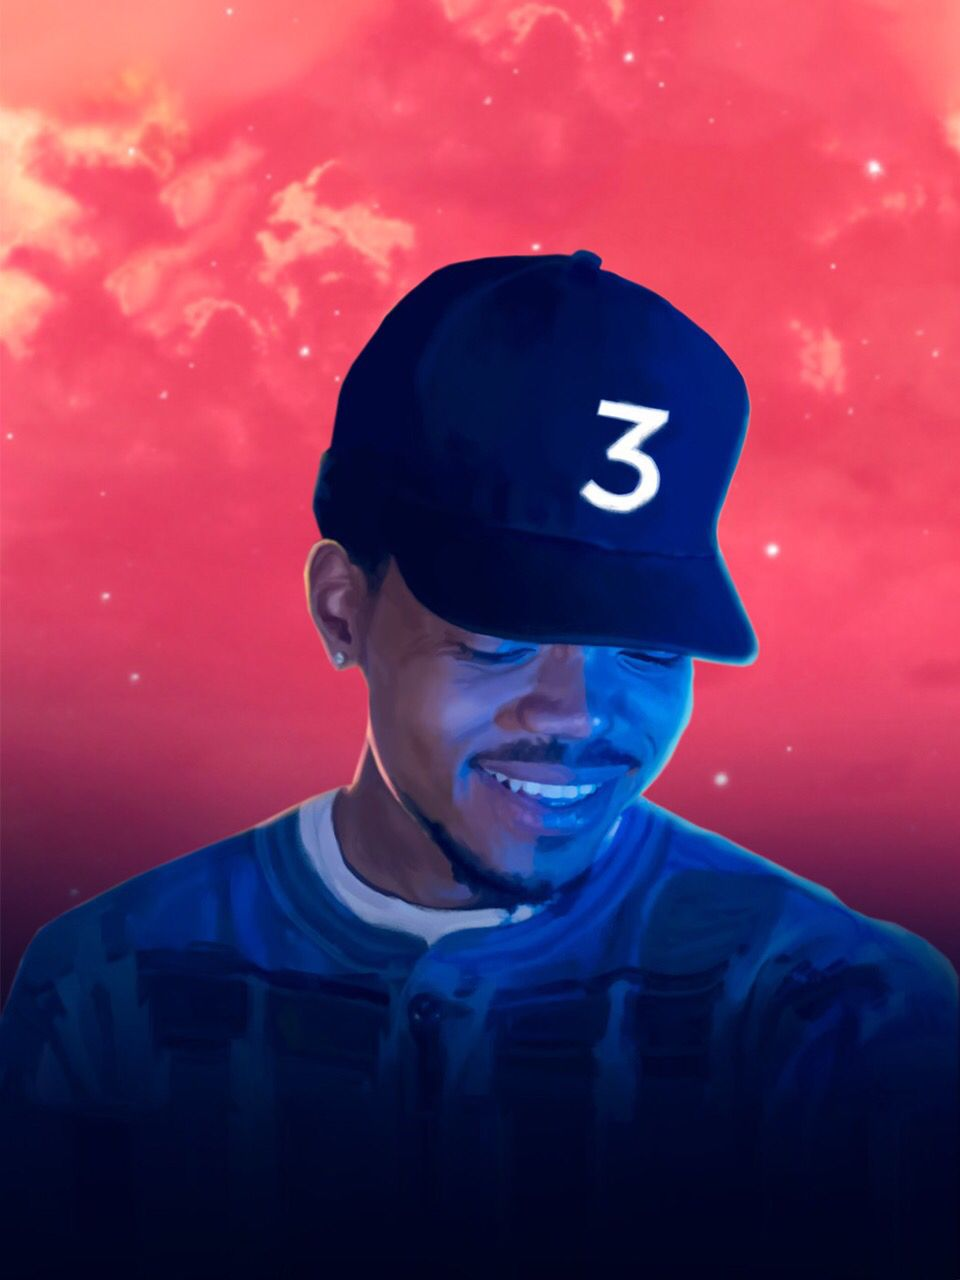 Pin By Tae On Photoart Coloring Book Album Mixtape Cover Chance The Rapper